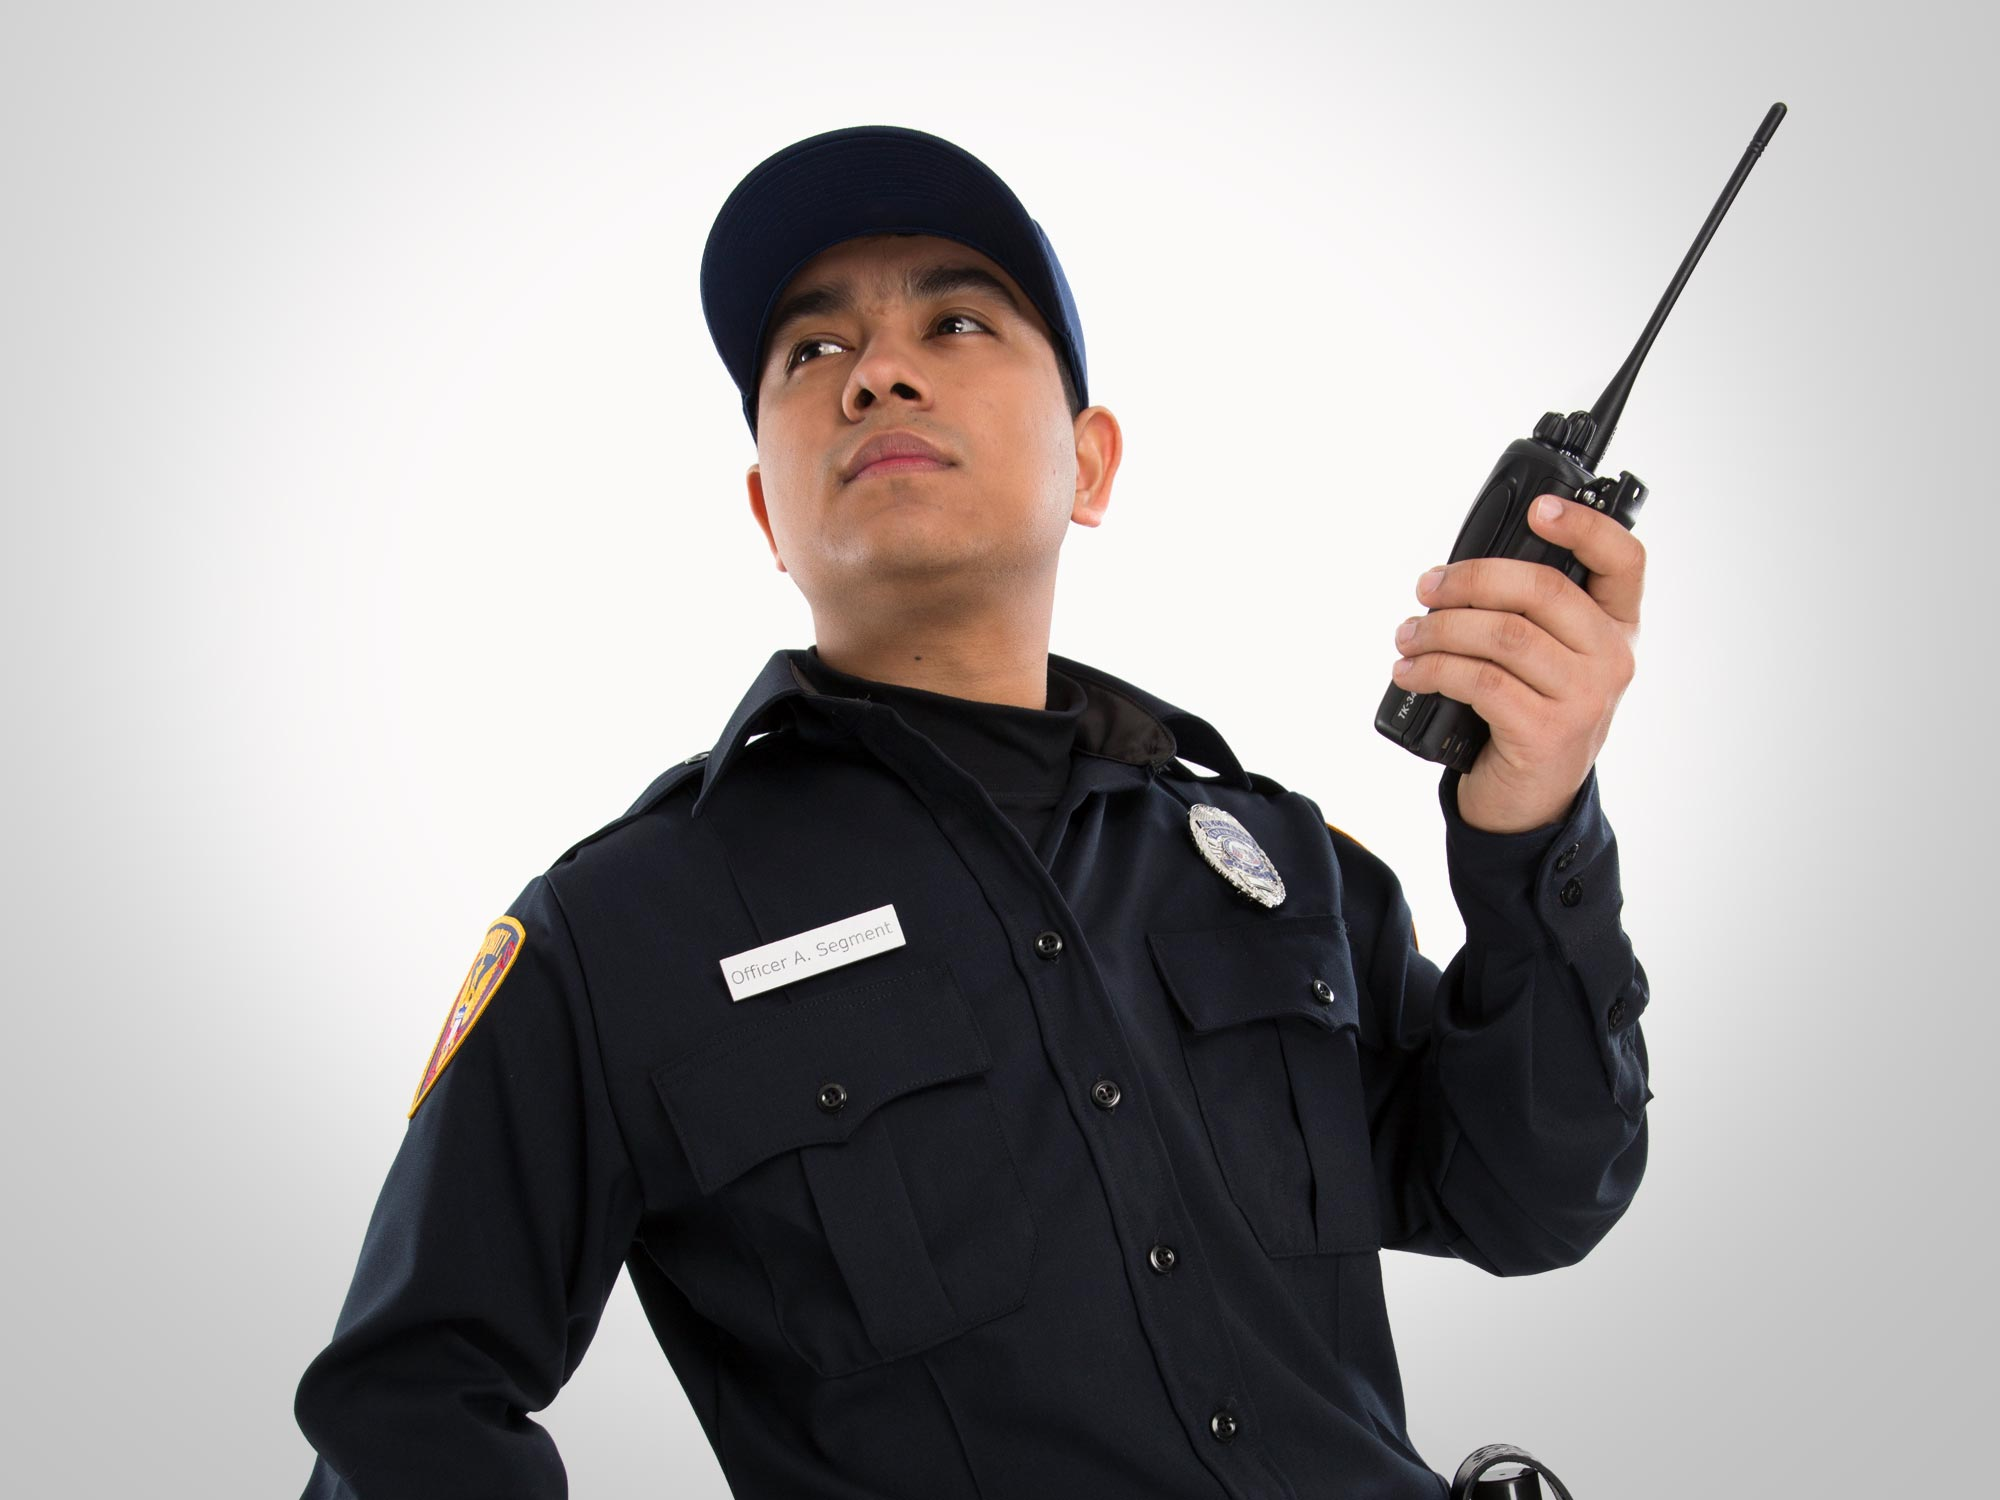 Male student in police uniform with walkie talkie